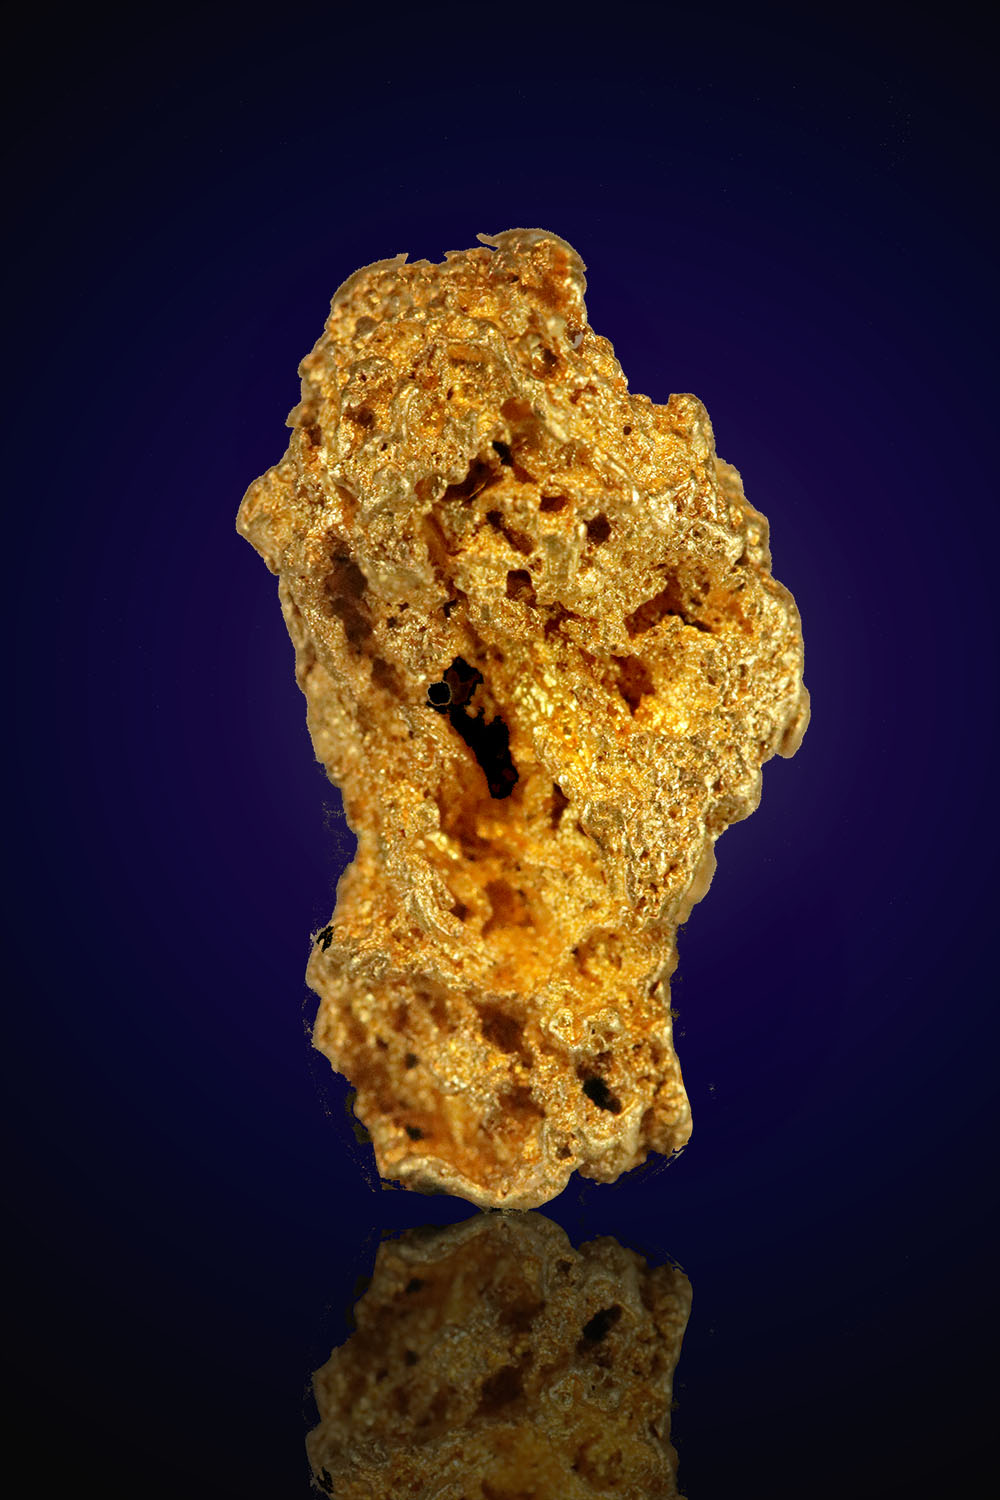 Triangular textured gold nugget from Nevada